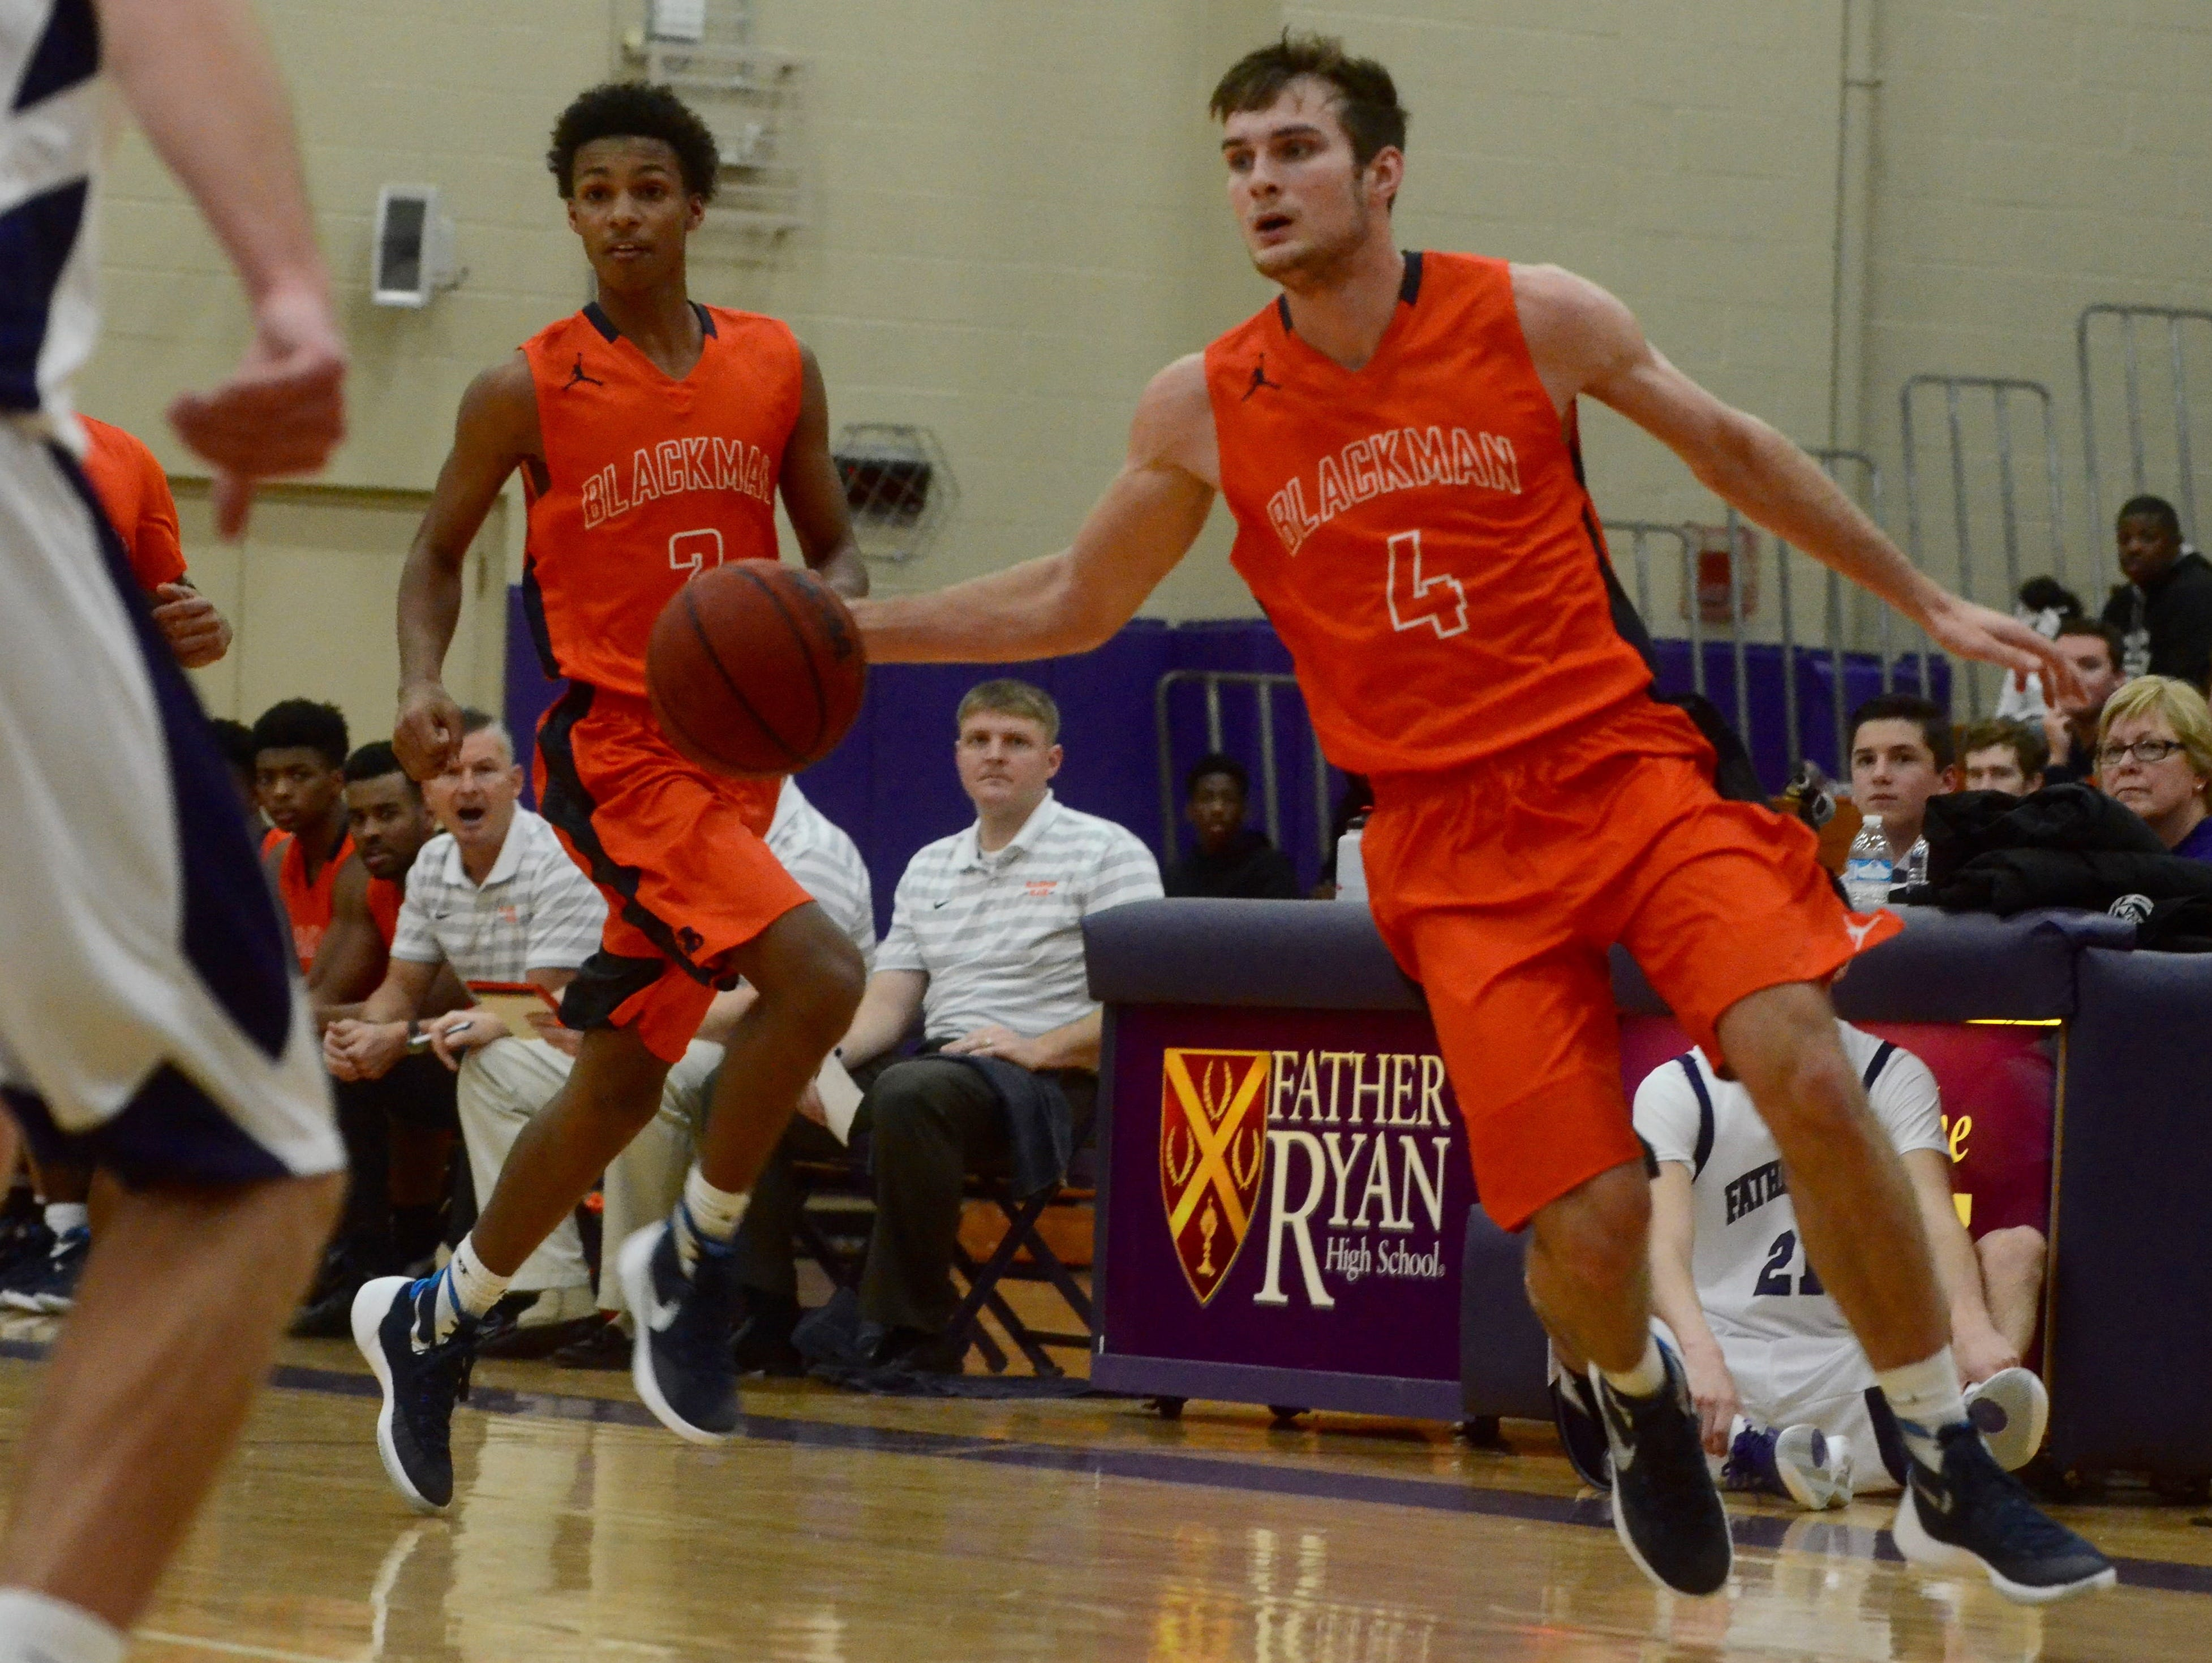 Blackman's Christian DeWitt (4) starts a fast break while teammate Donovan Sims (3) trails during Wednesday's championship game of the Willie Brown Invitational on Wednesday at Father Ryan.